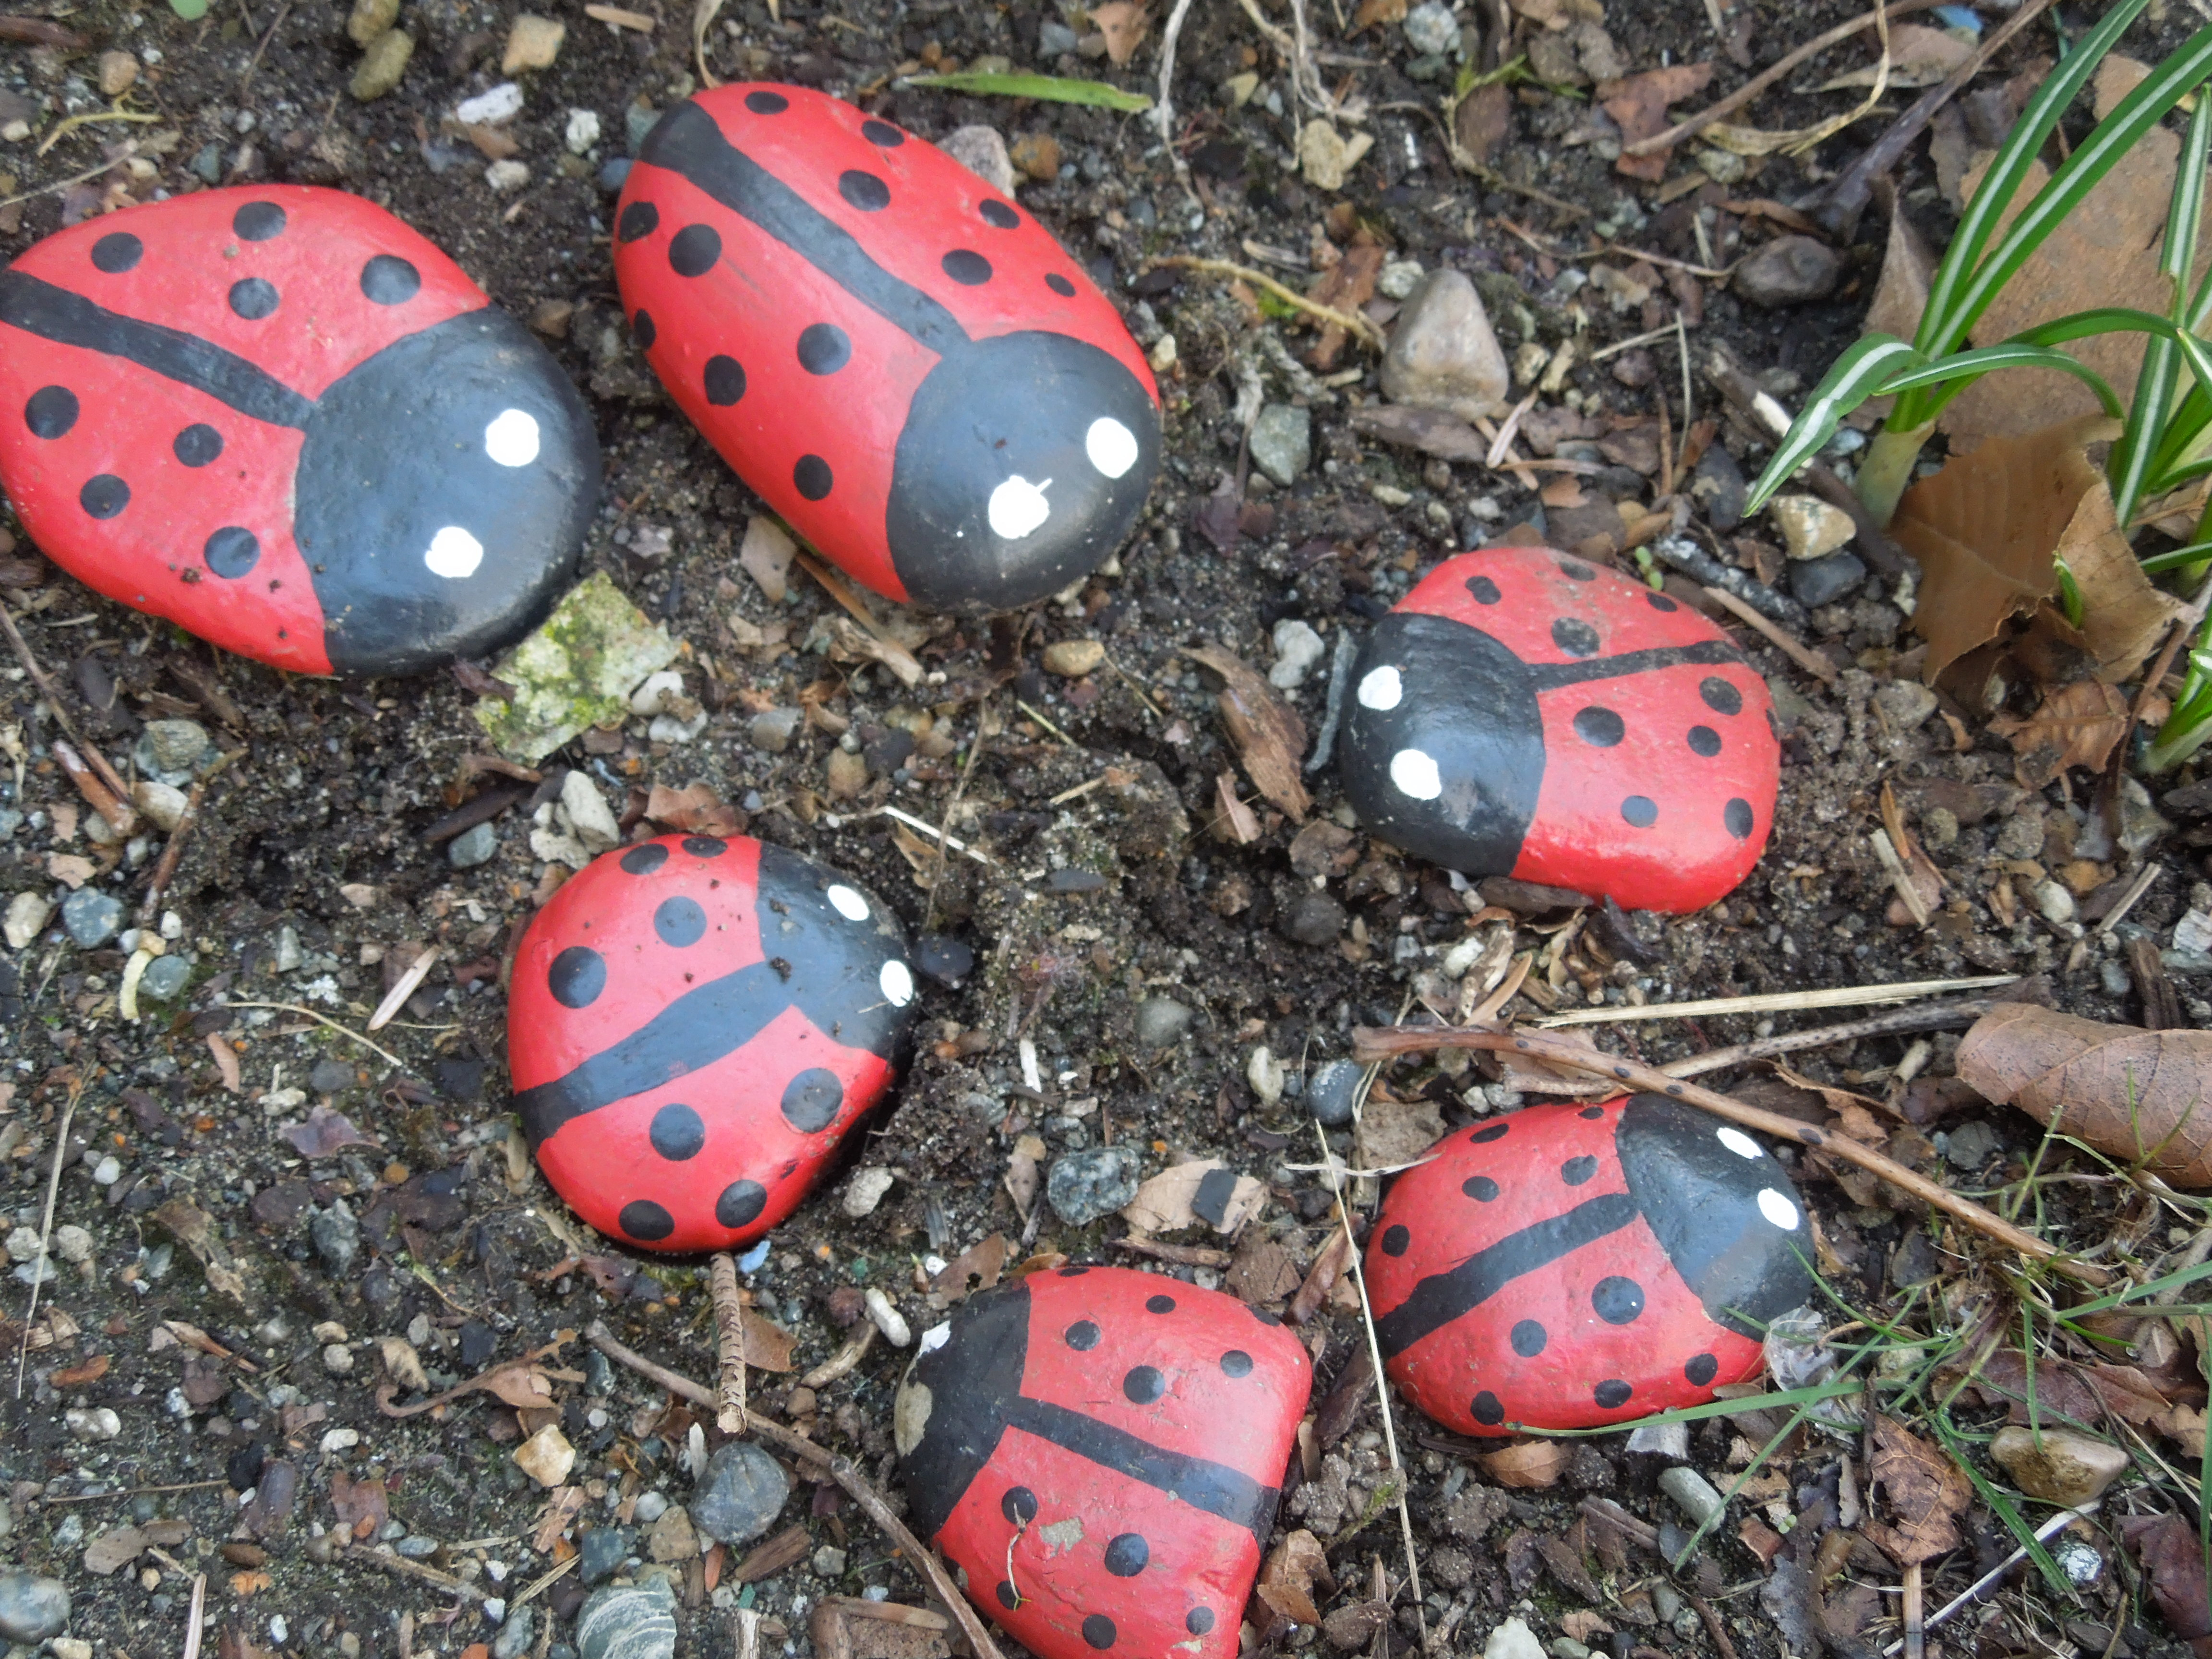 Painted Rocks As An Easy Garden Decoration Lifemadehappy